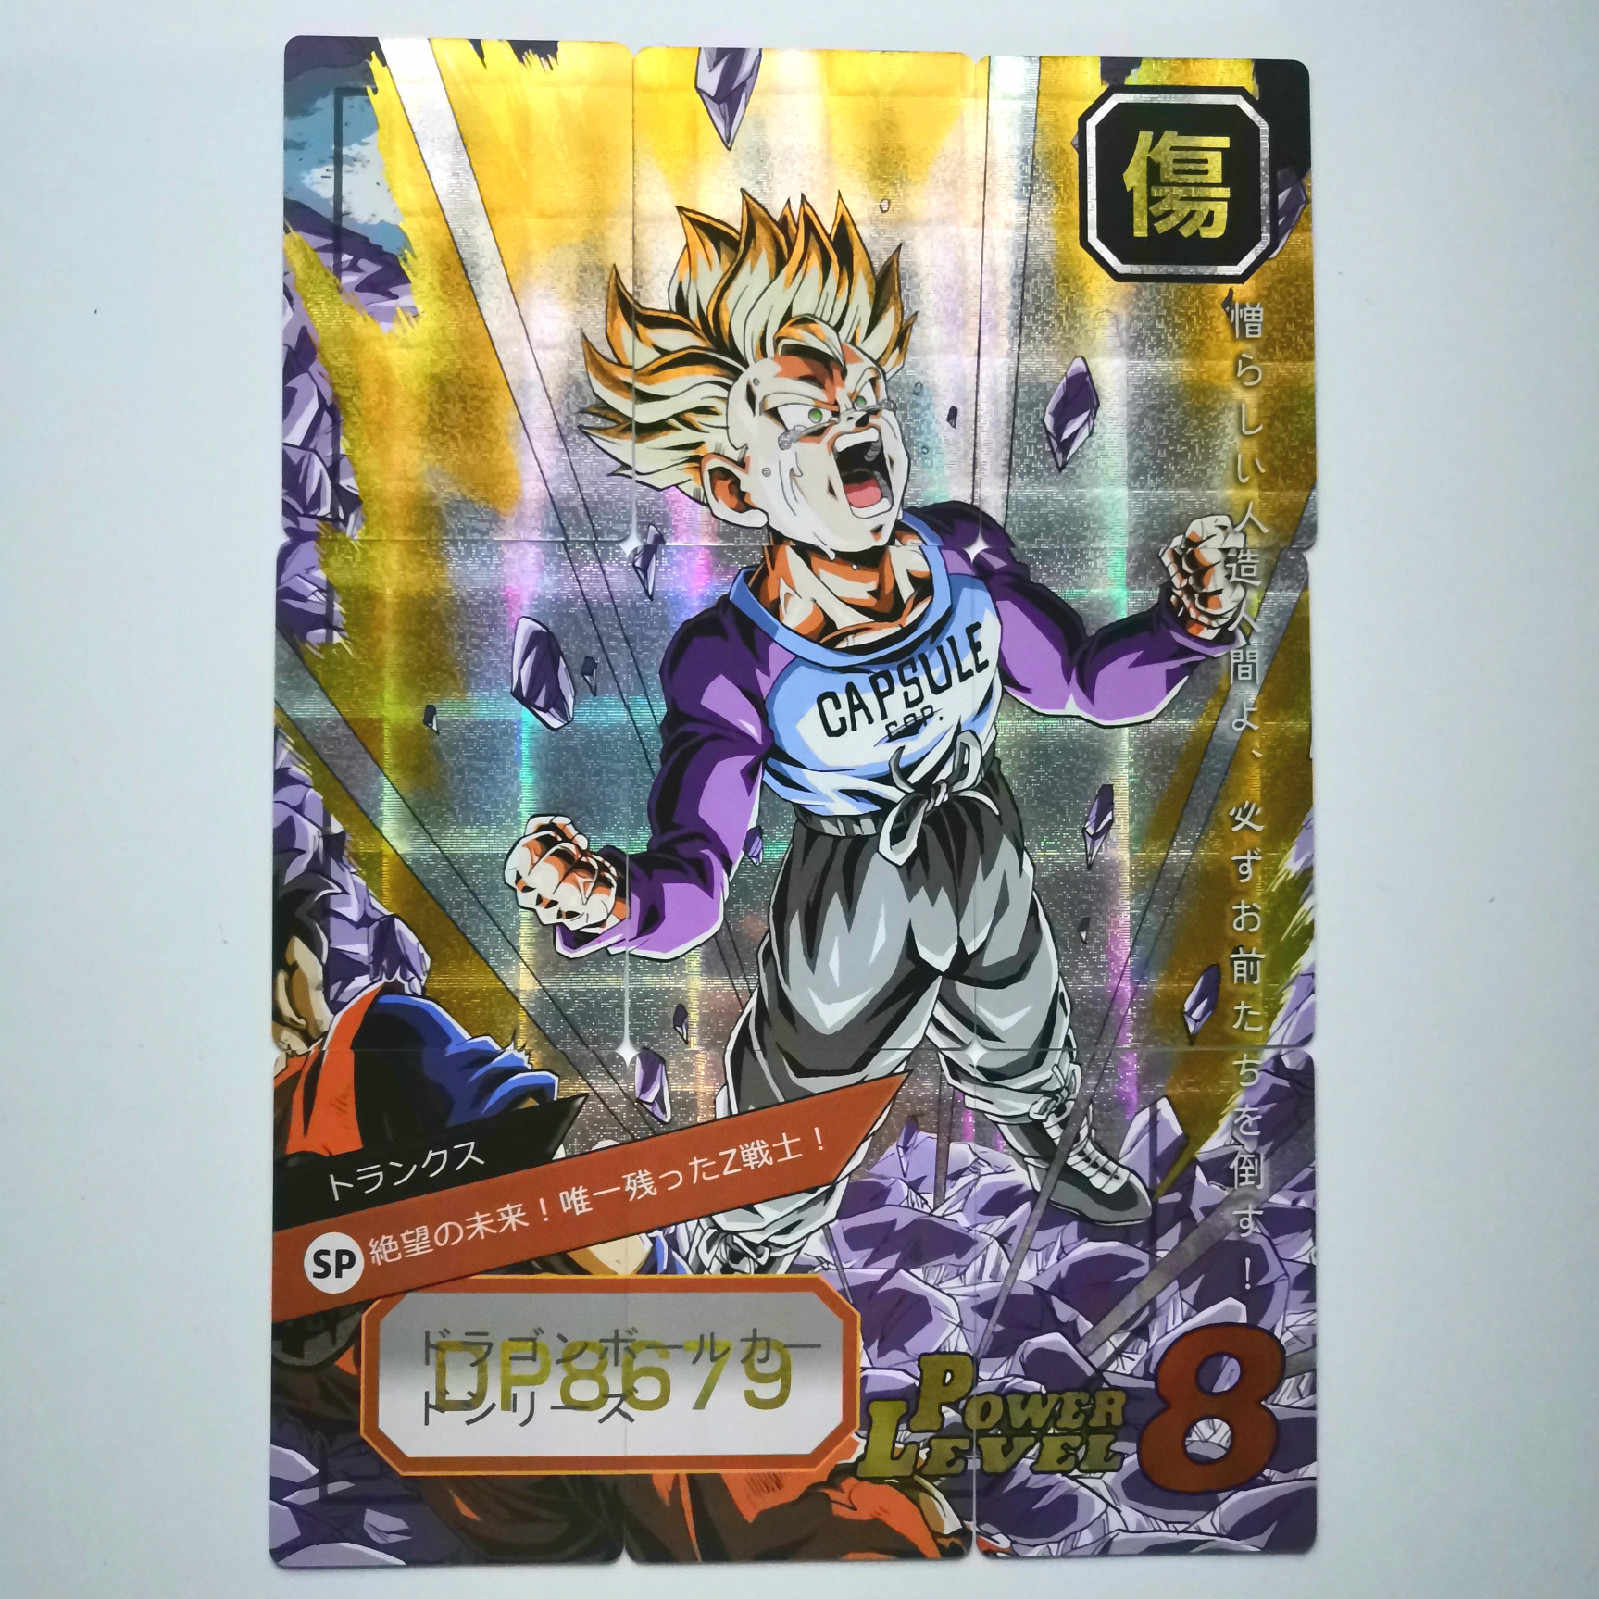 54pcs 9 in 1 Super Dragon Ball Z Heroes Battle Card Ultra Instinct Goku Vegeta Super Game Collection Cards